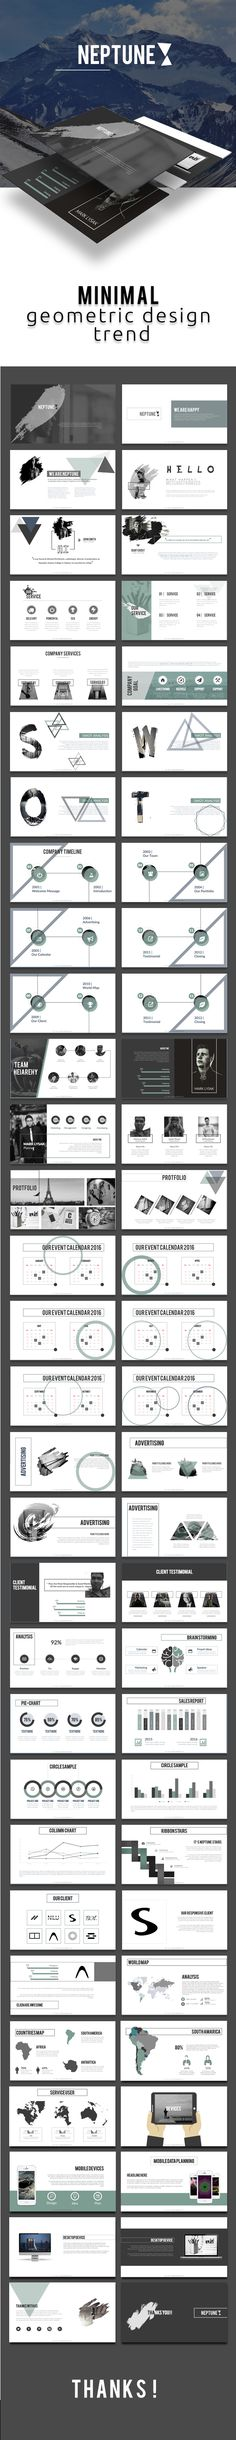 Buy Neptune Powerpoint Template by mnsk on GraphicRiver. Neptune Powerpoint Template This is Creative and Minimalist Presentation Template, perfect for multipurpose uses. Page Layout Design, Web Design, Slide Design, Book Design, Graphic Design, Design Presentation, Presentation Boards, Pptx Templates, Design Templates